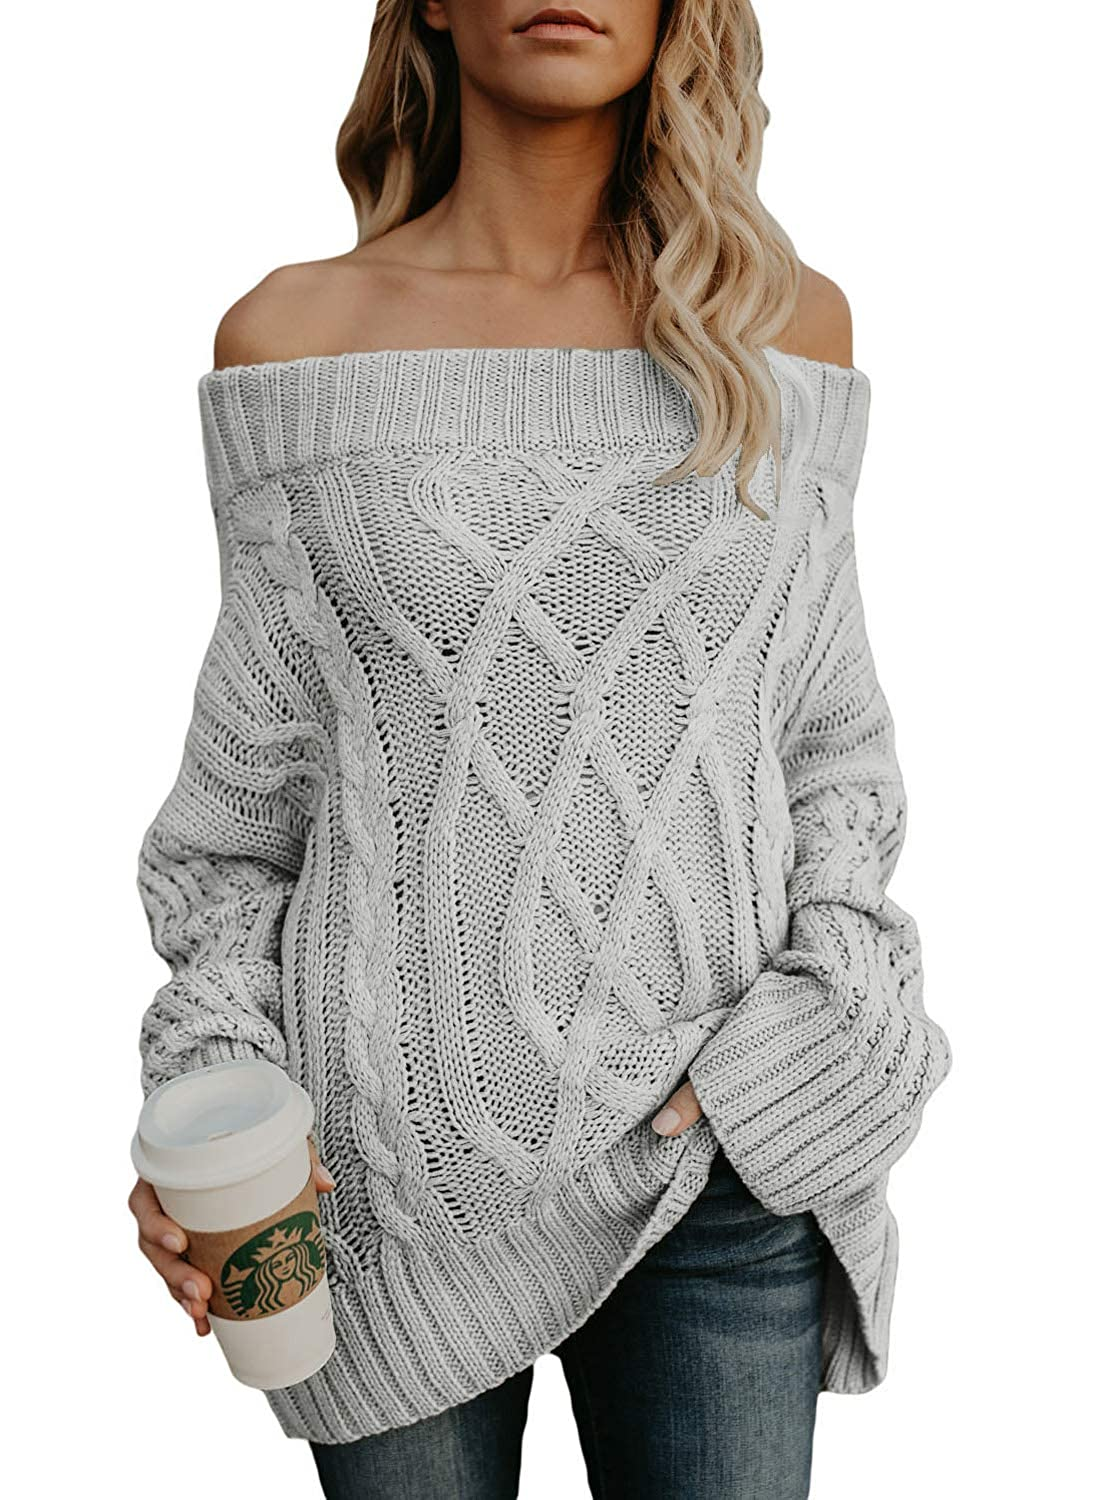 Allumk Womens Oversized Off The Shoulder Solid Loose Cable Knit Pullover Sweaters Jumper APSE5018-T